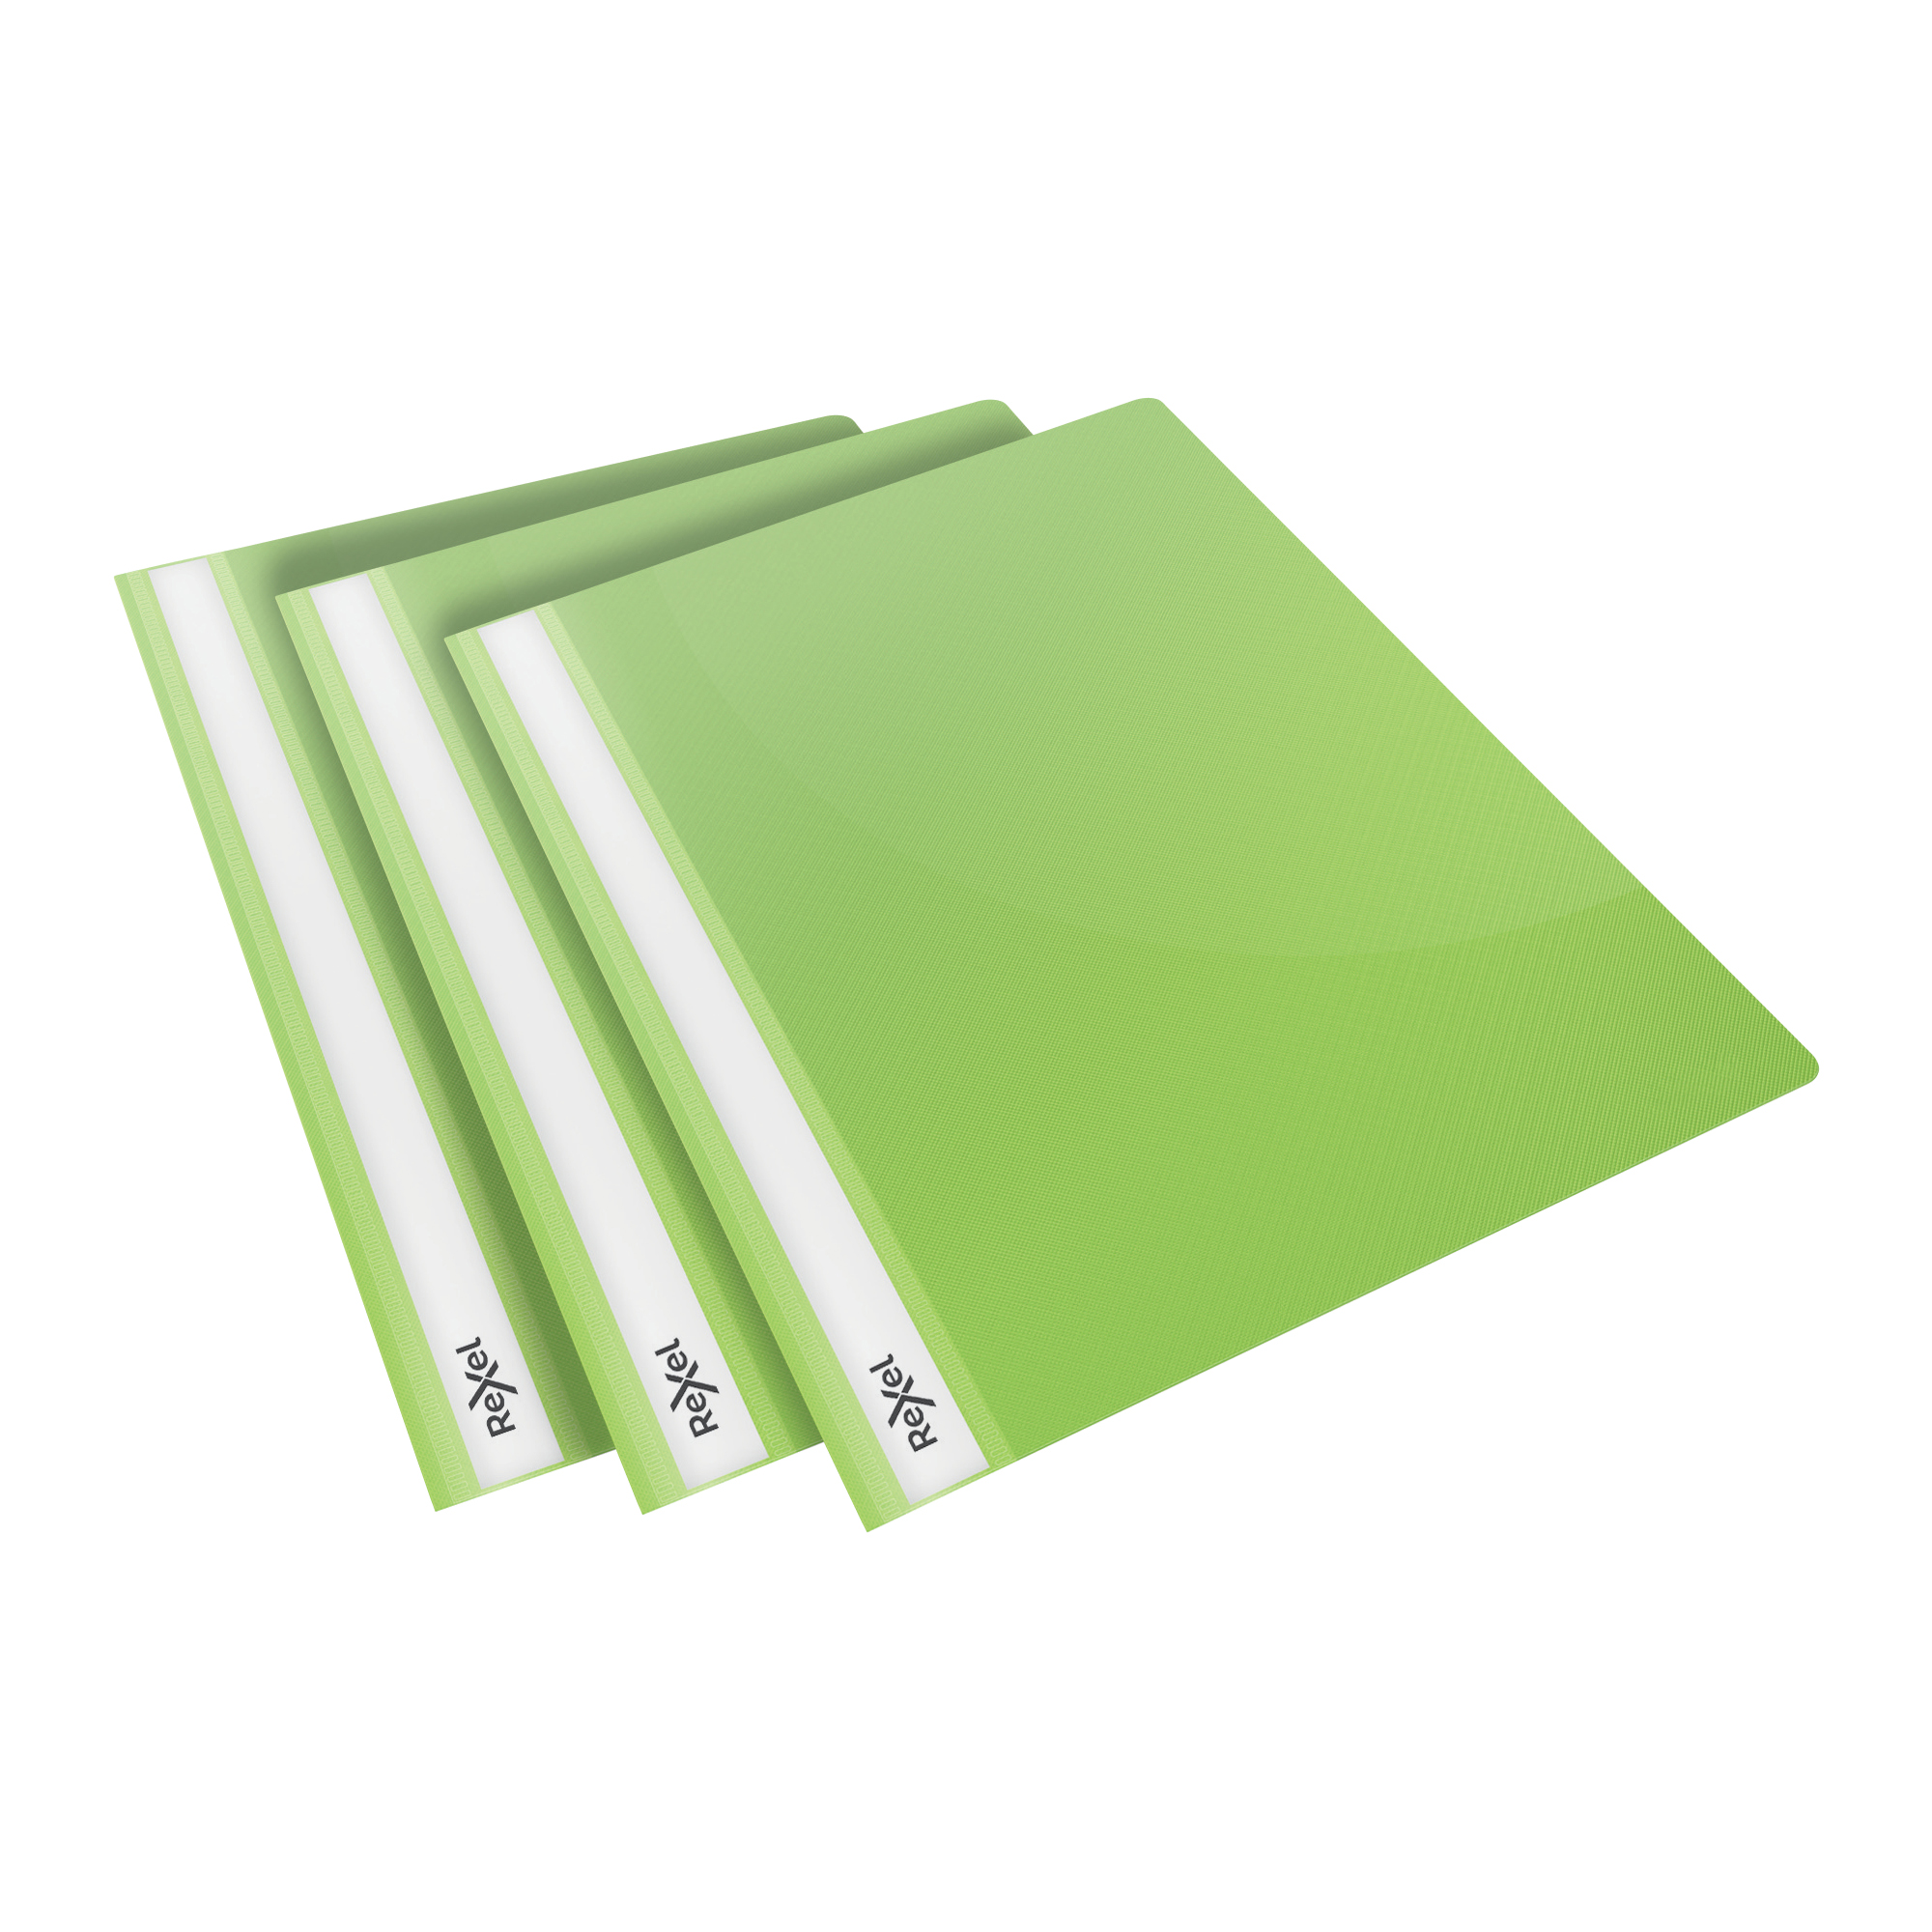 Folders Rexel Choices Report Fldr Clear Front Capacity 160 Sheets A4 Green Ref 2115643 Pack 25